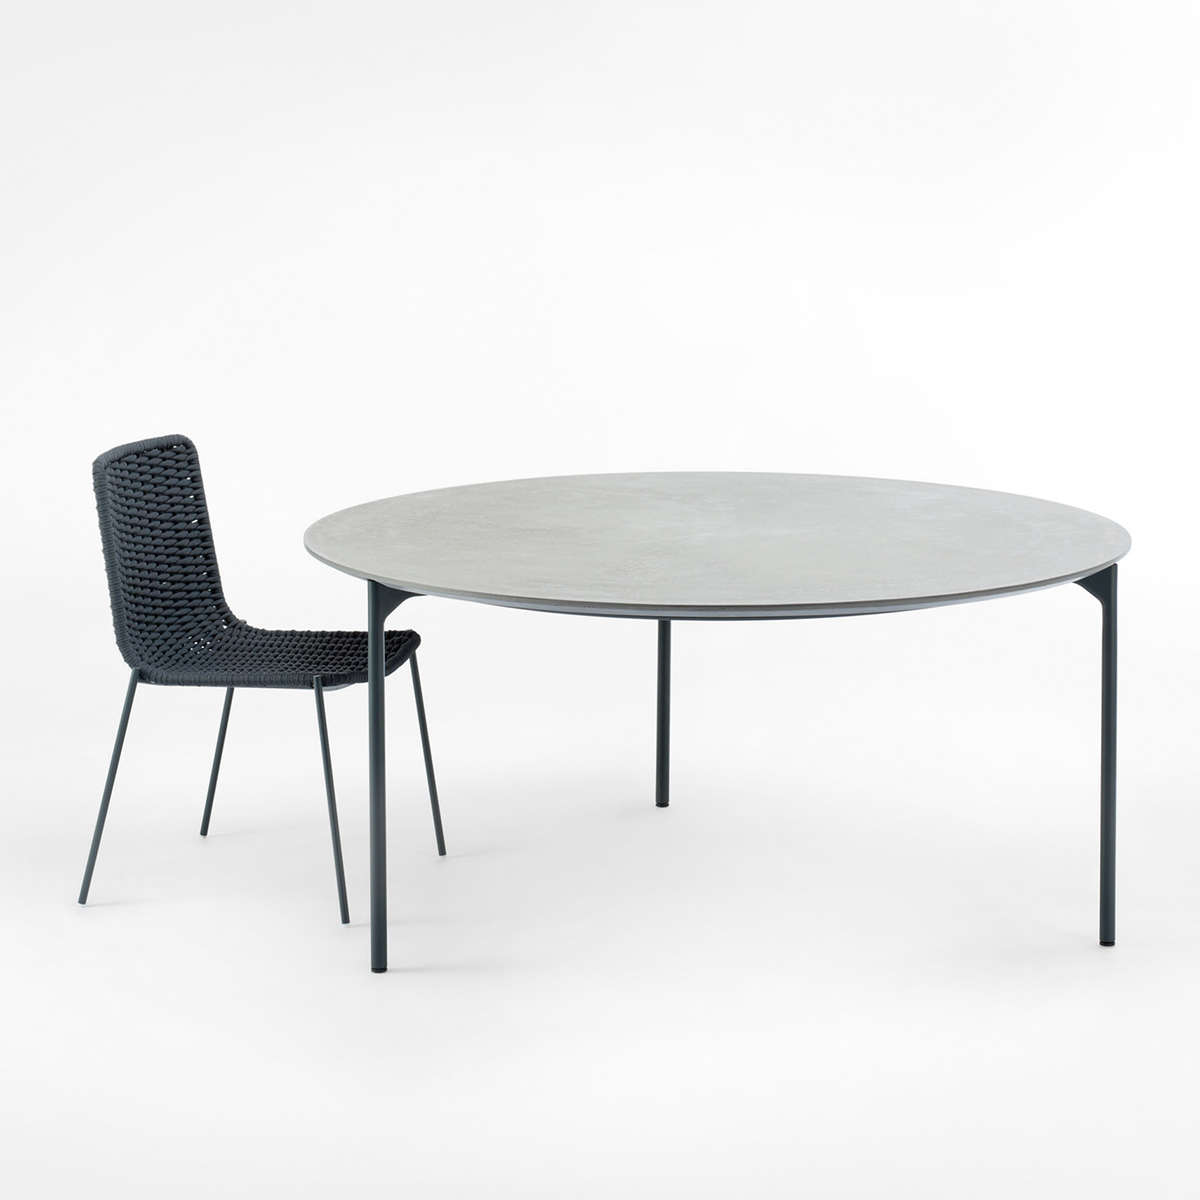 Paola Lenti Kiti Dining Chair Studio 6